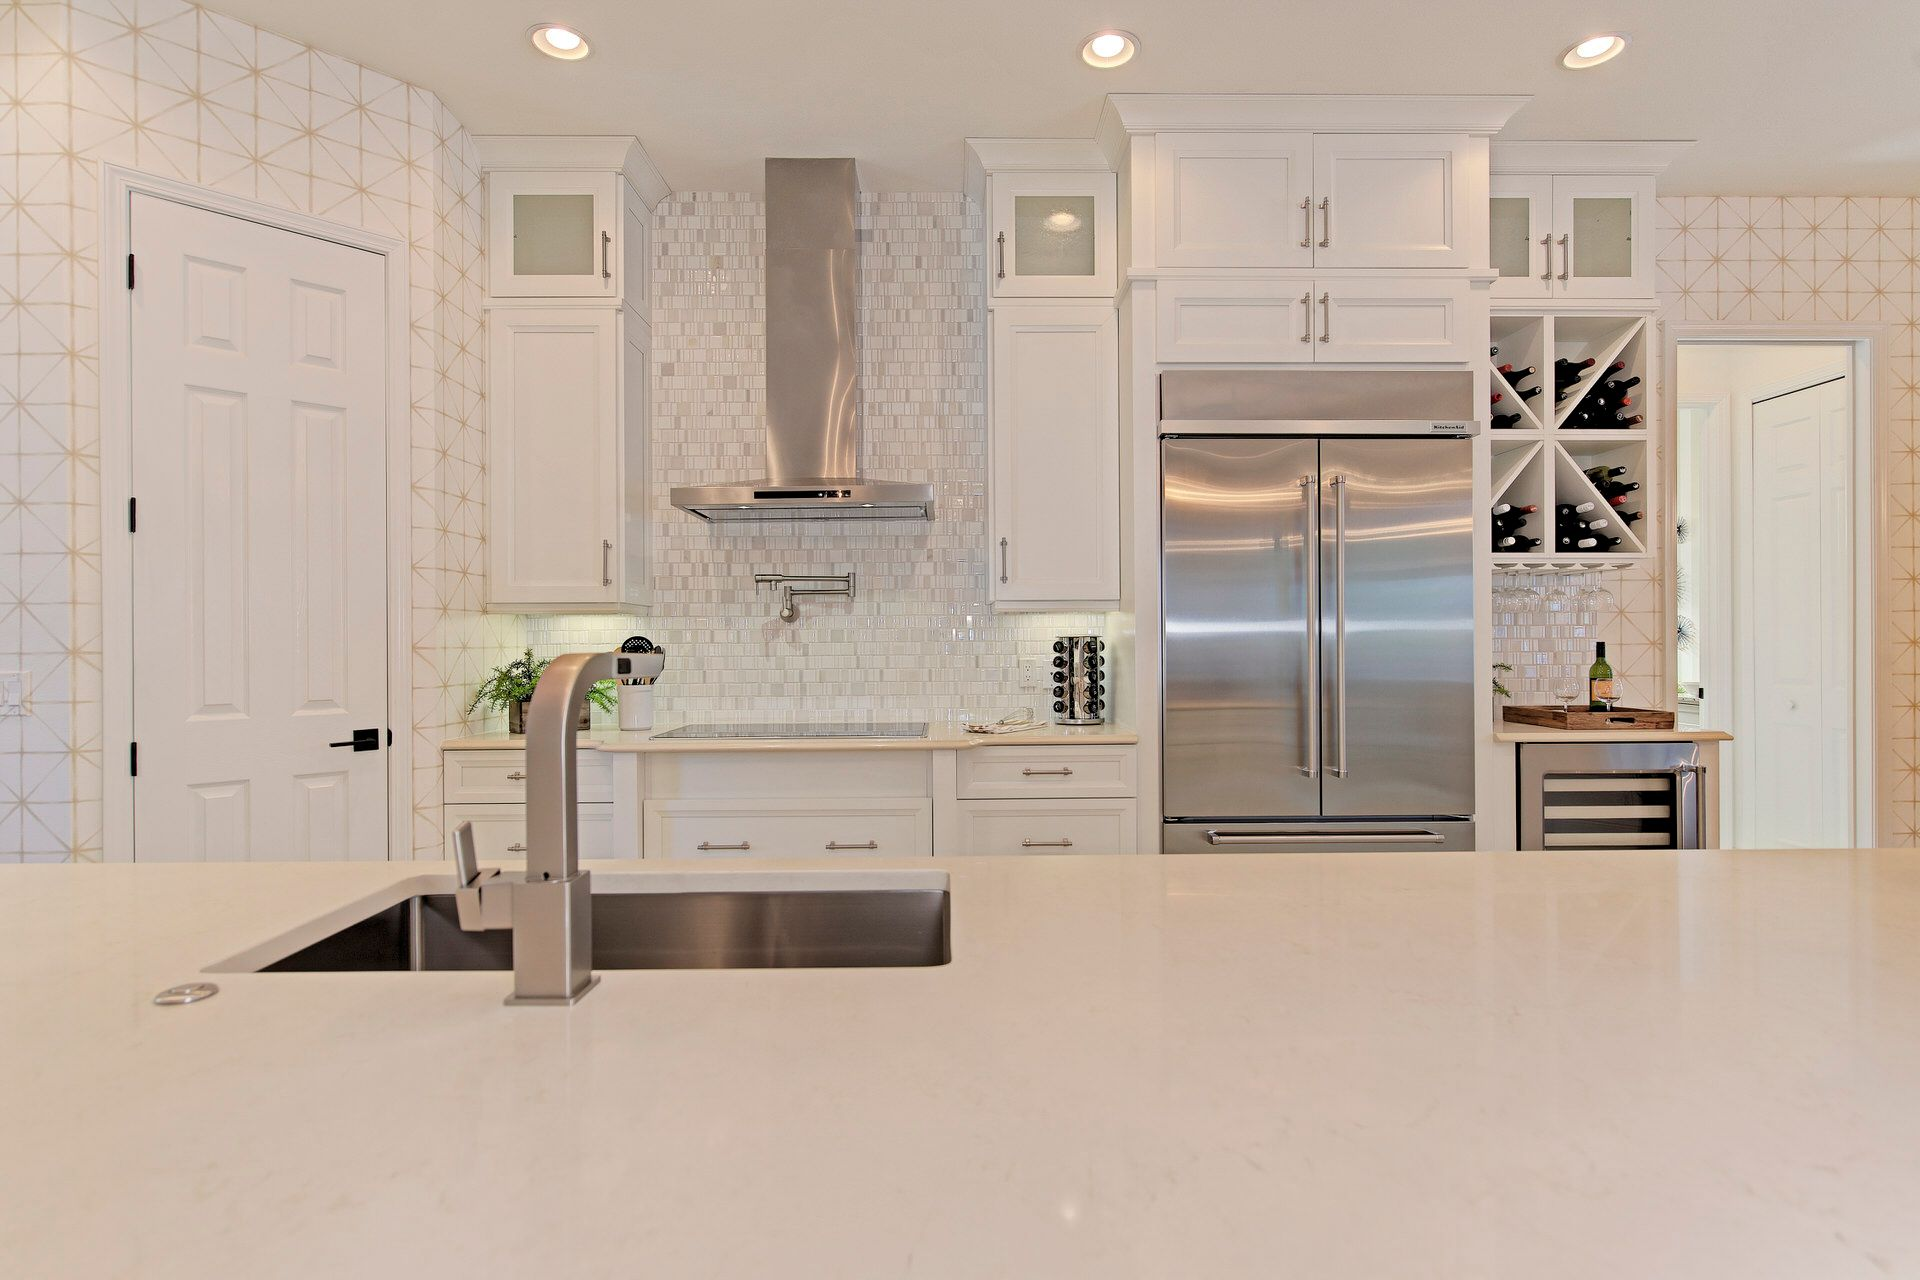 Kitchen featured in the Grand Santa Maria-The Reserve By Medallion Home in Sarasota-Bradenton, FL